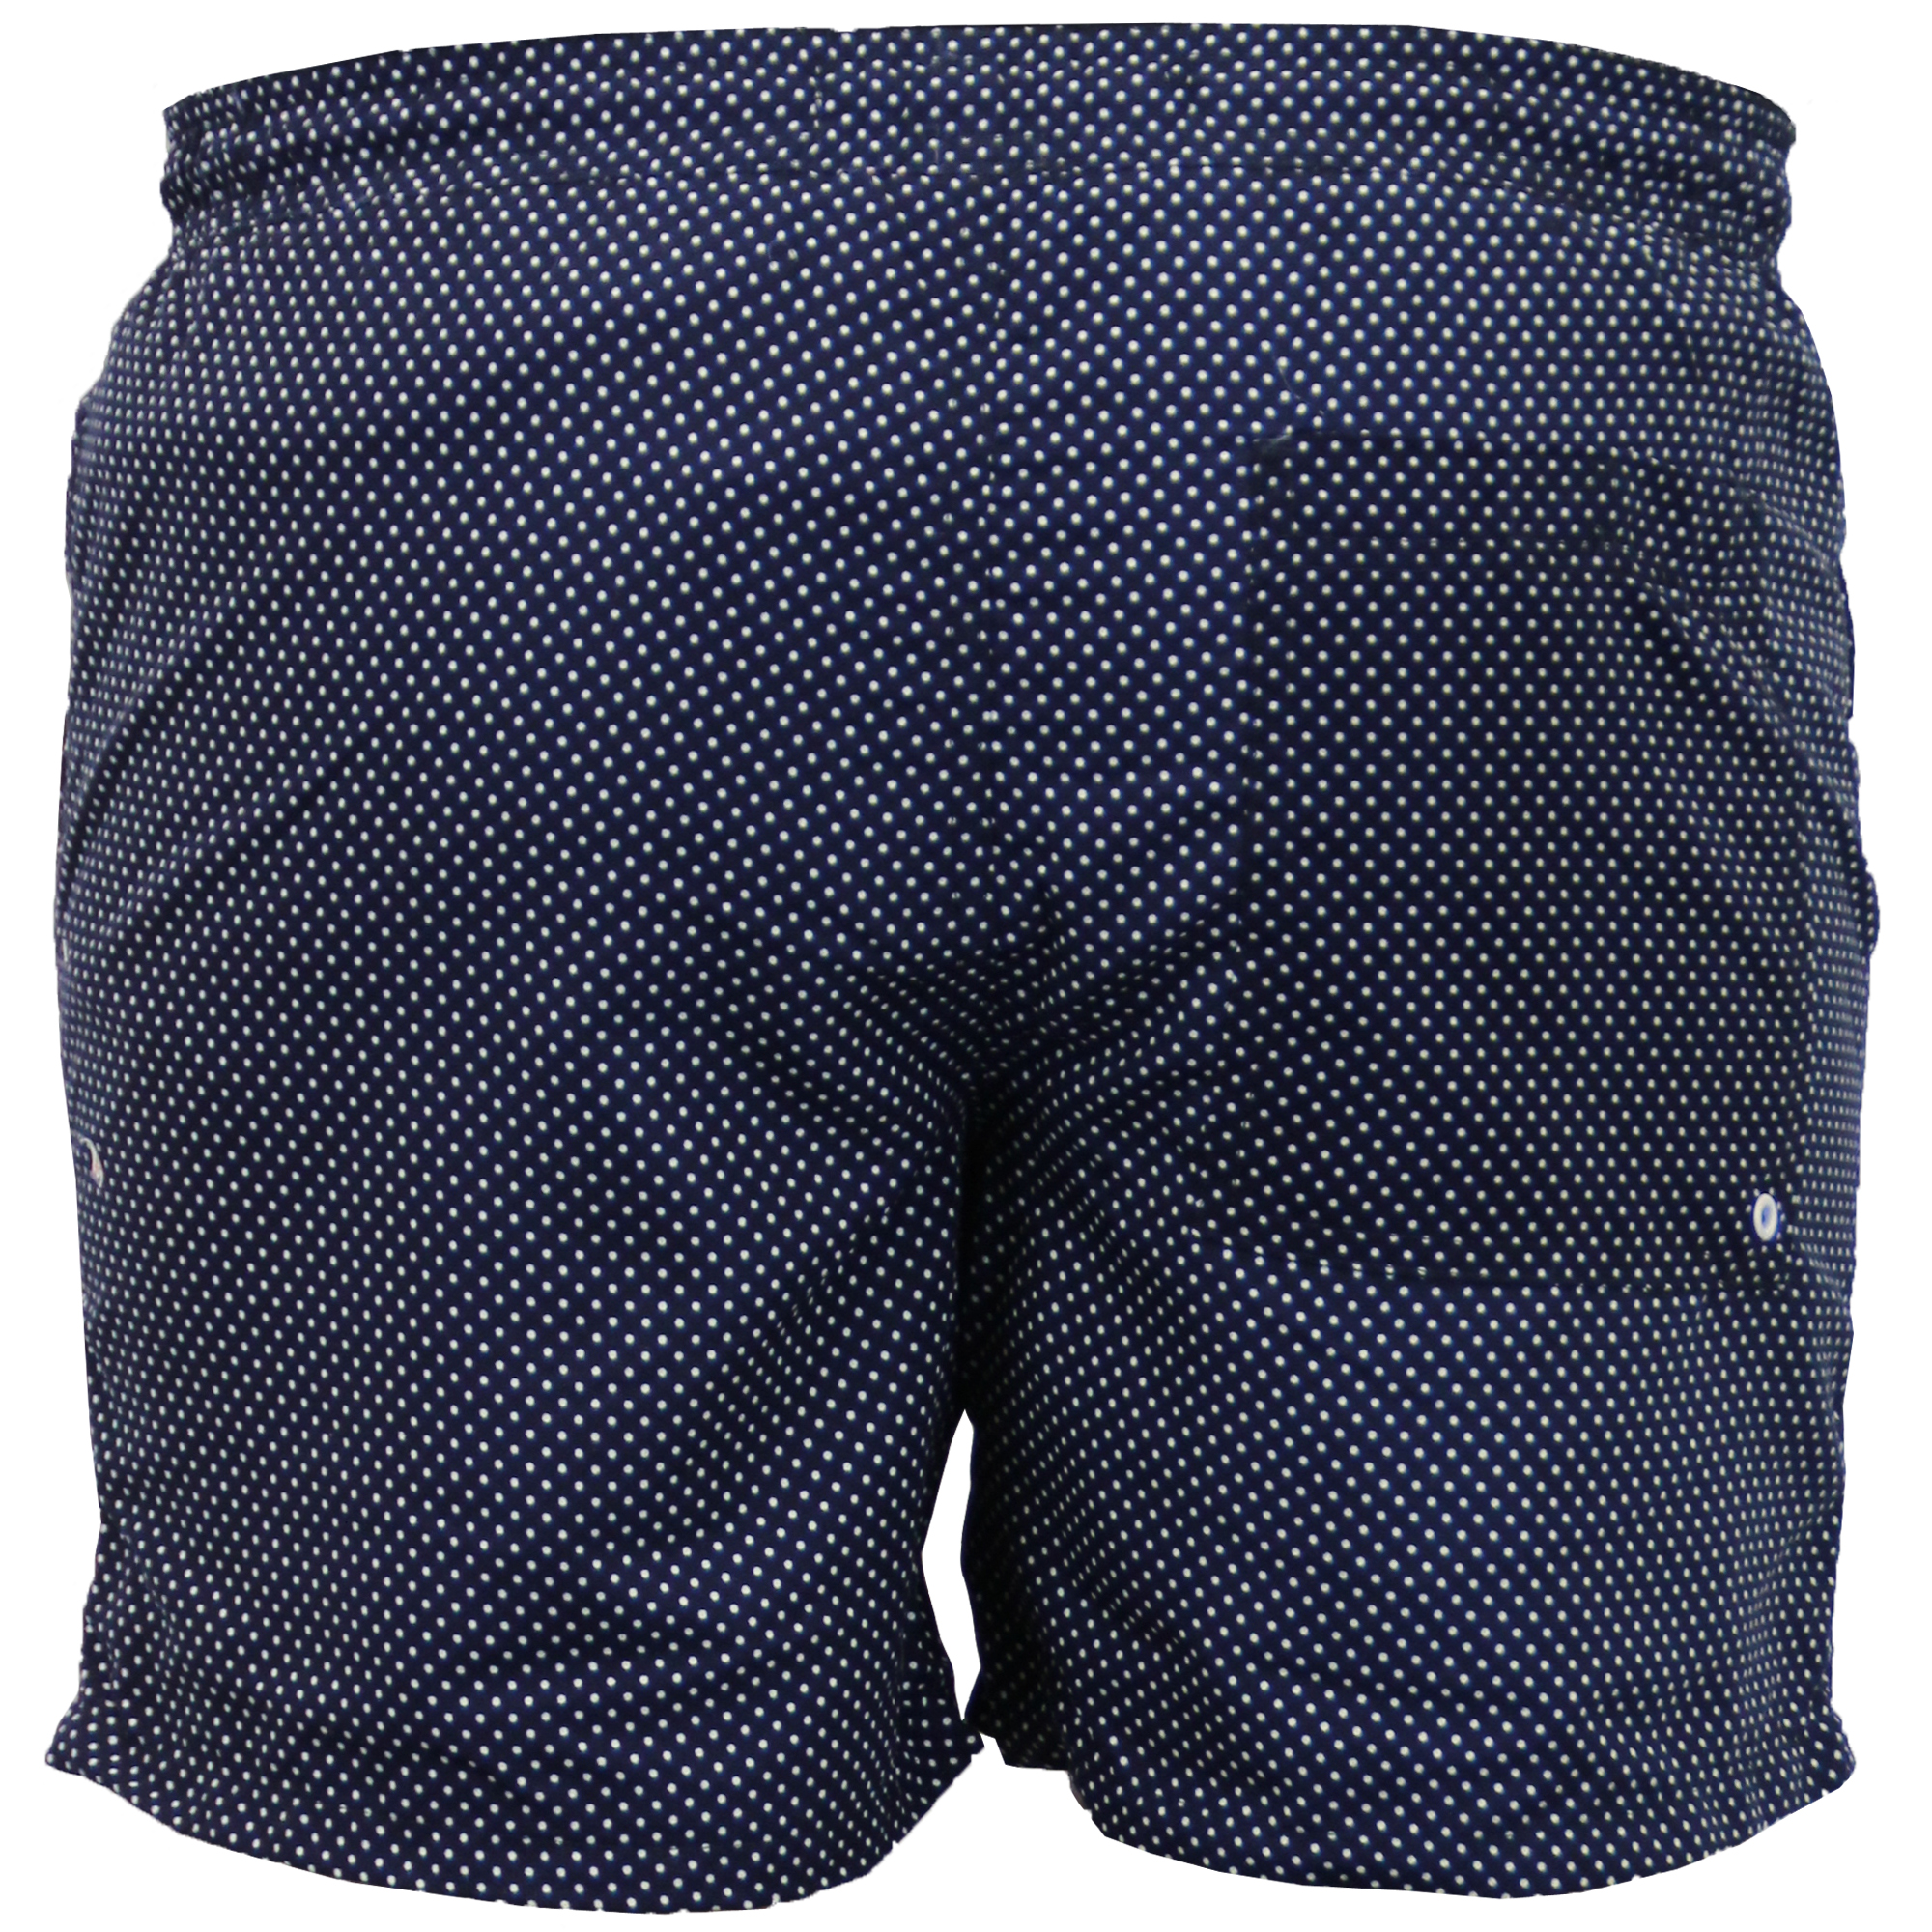 Mens-Swim-Board-Shorts-By-Brave-Soul-Mesh-Lined-New thumbnail 41